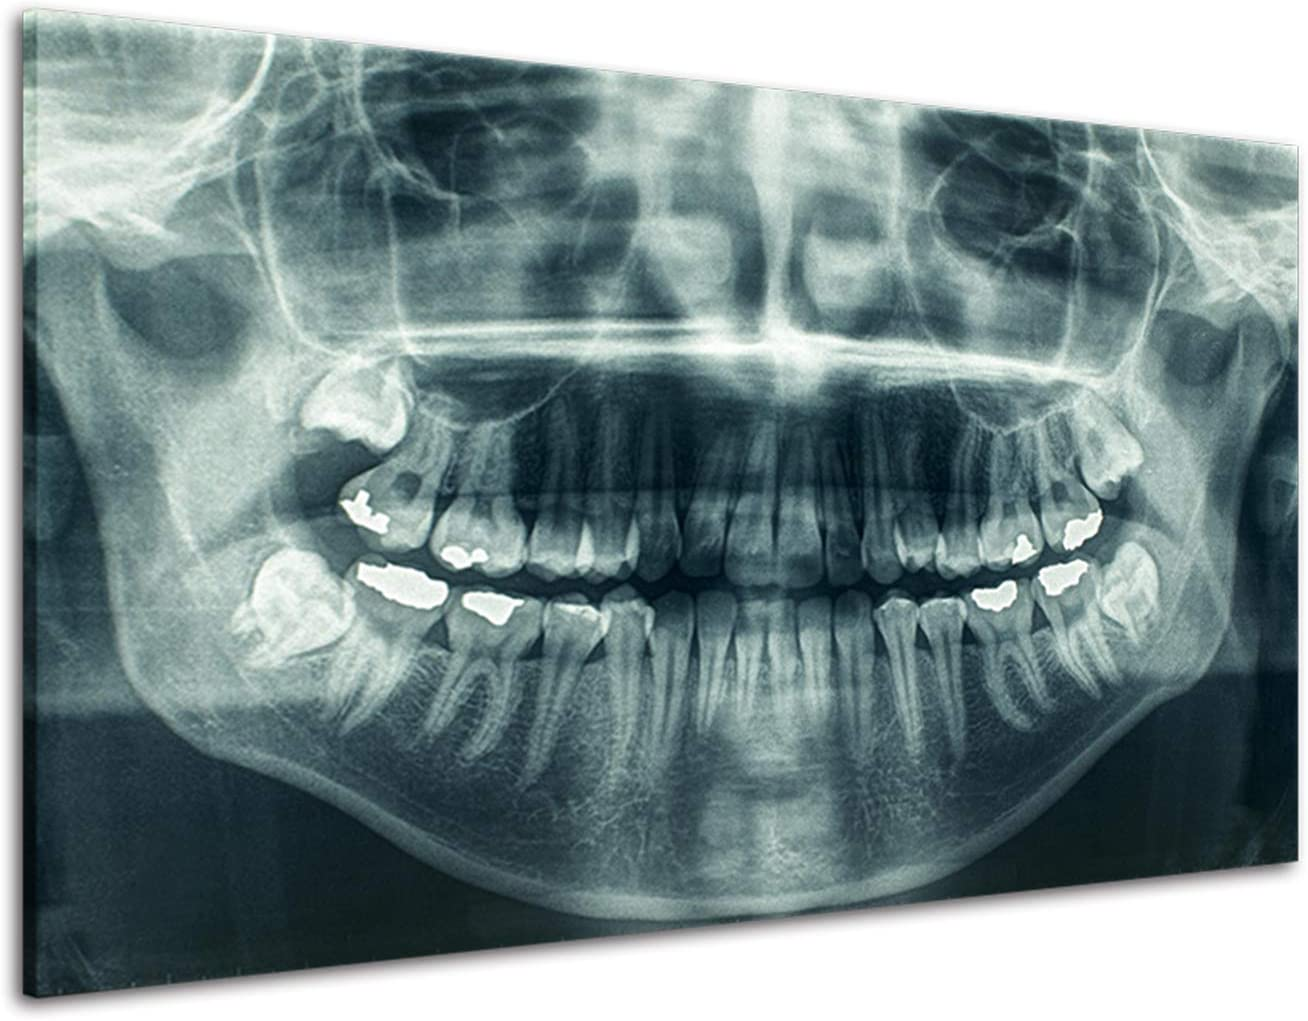 RINWUNS Canvas Wall Art X-Ray Dental Tooth Wall Painting Oral Panoramic Poster Teeth Decay Prints on Canvas Artwork for Dental Clinic Office Hospital Gift for Dentist Home Decor -16x24inch(Framed)